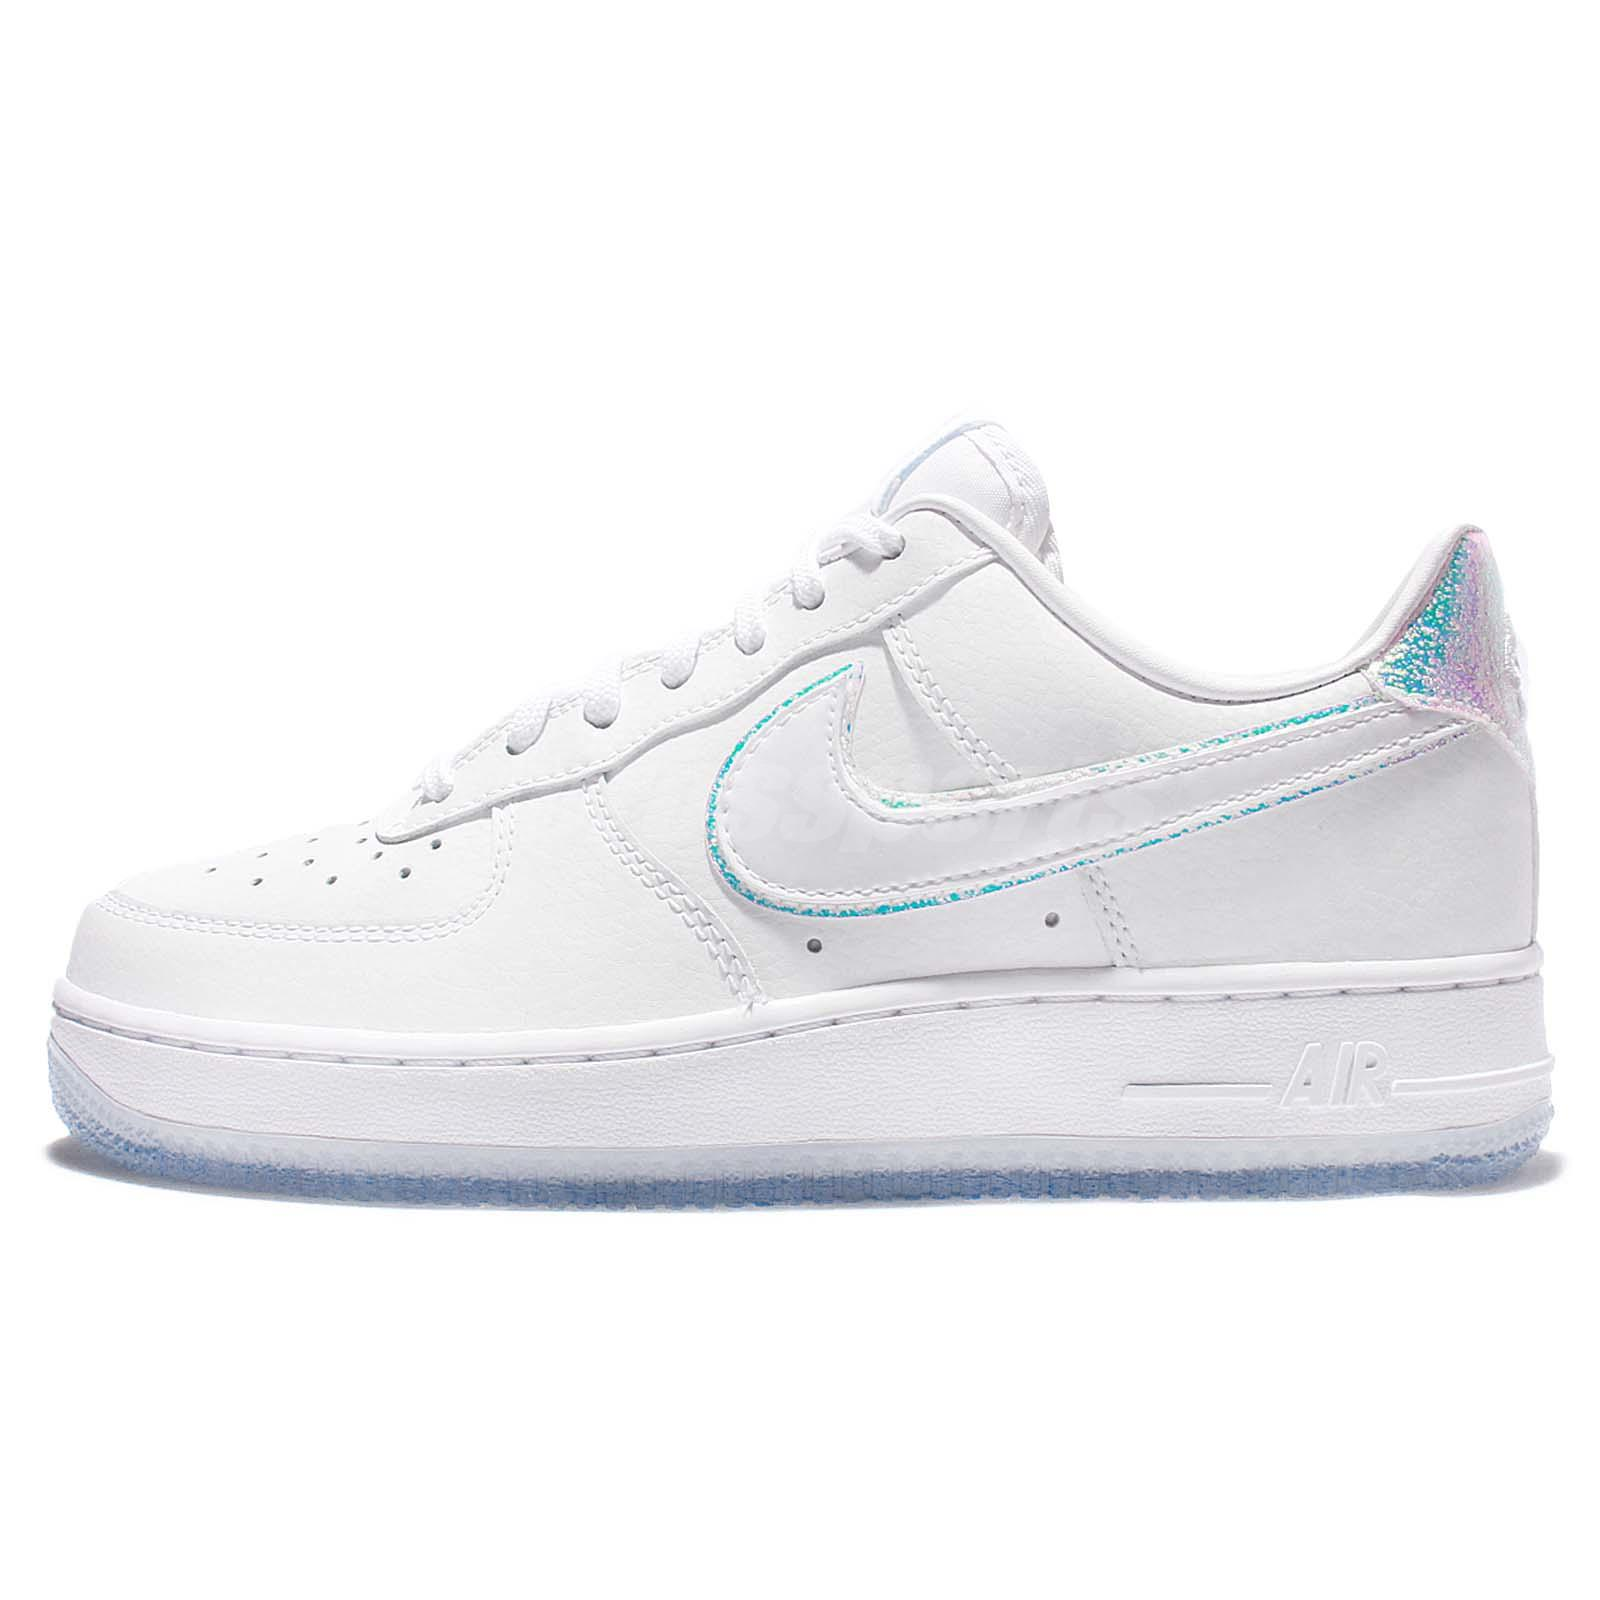 Wmns Nike Air Force 1 07 PRM White Iridescent Women Classic Shoes AF1  616725-105